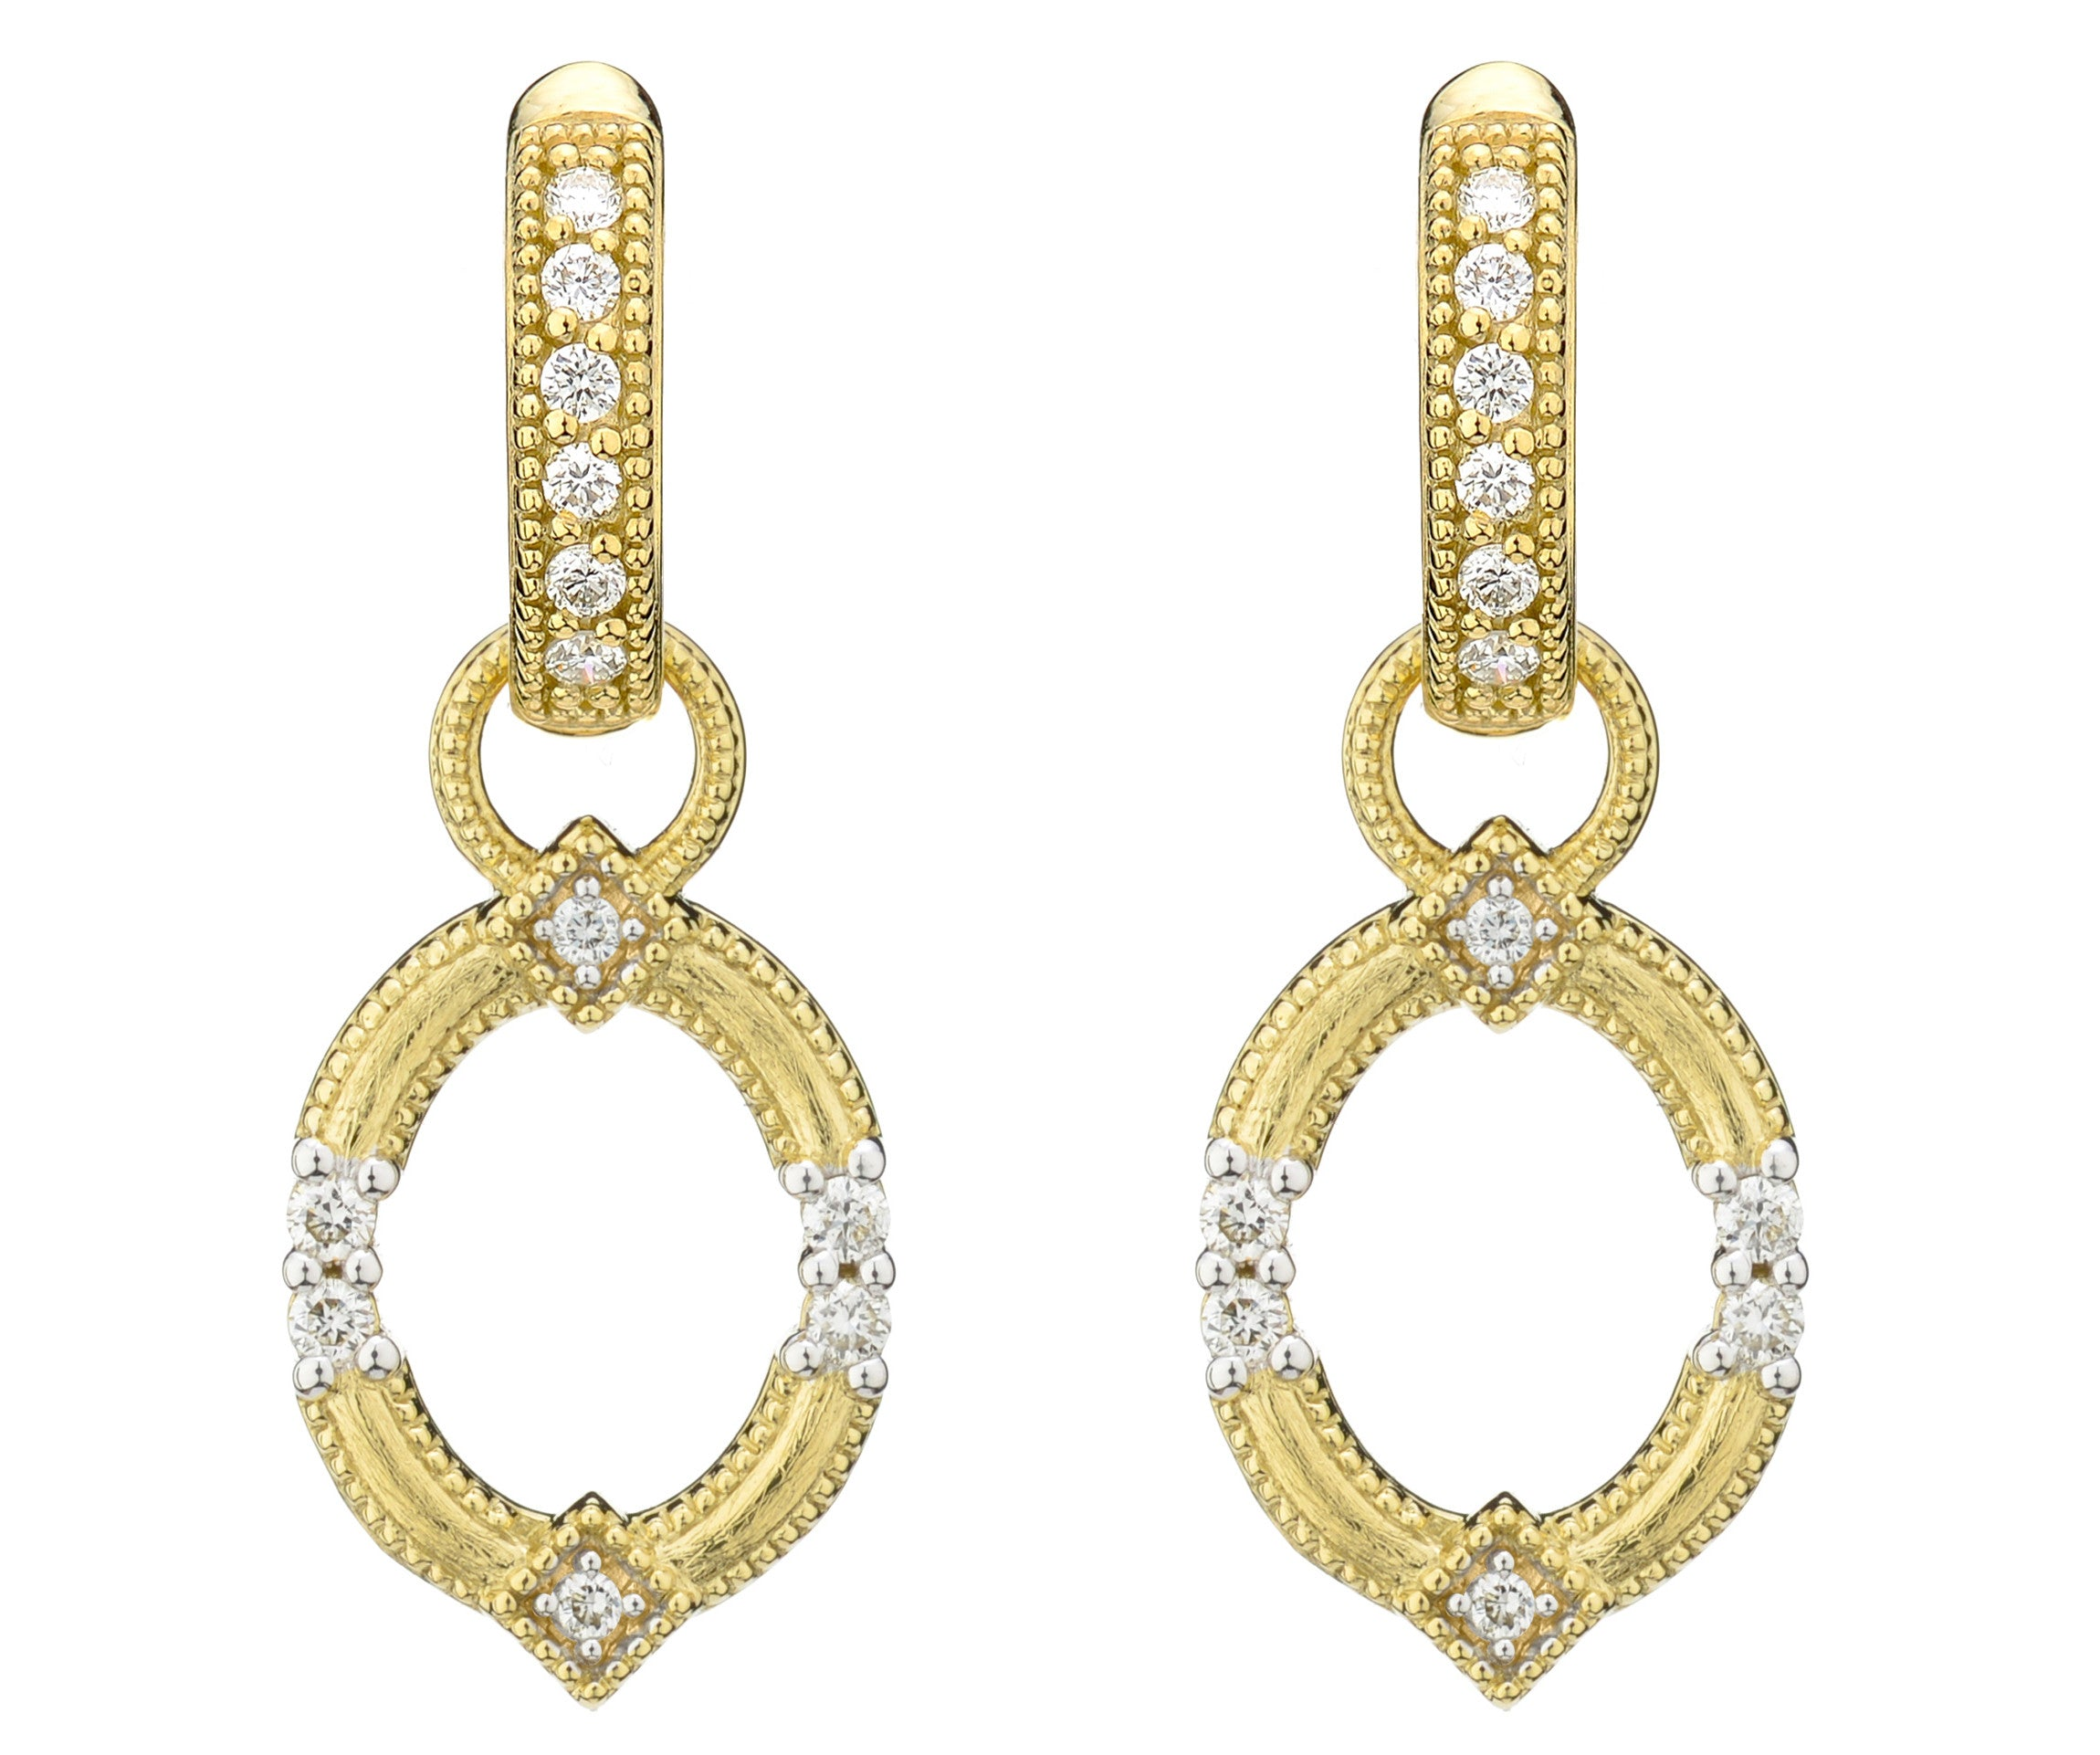 Lisse Open Circle Earring Charms With Simple Diamond Accents ...